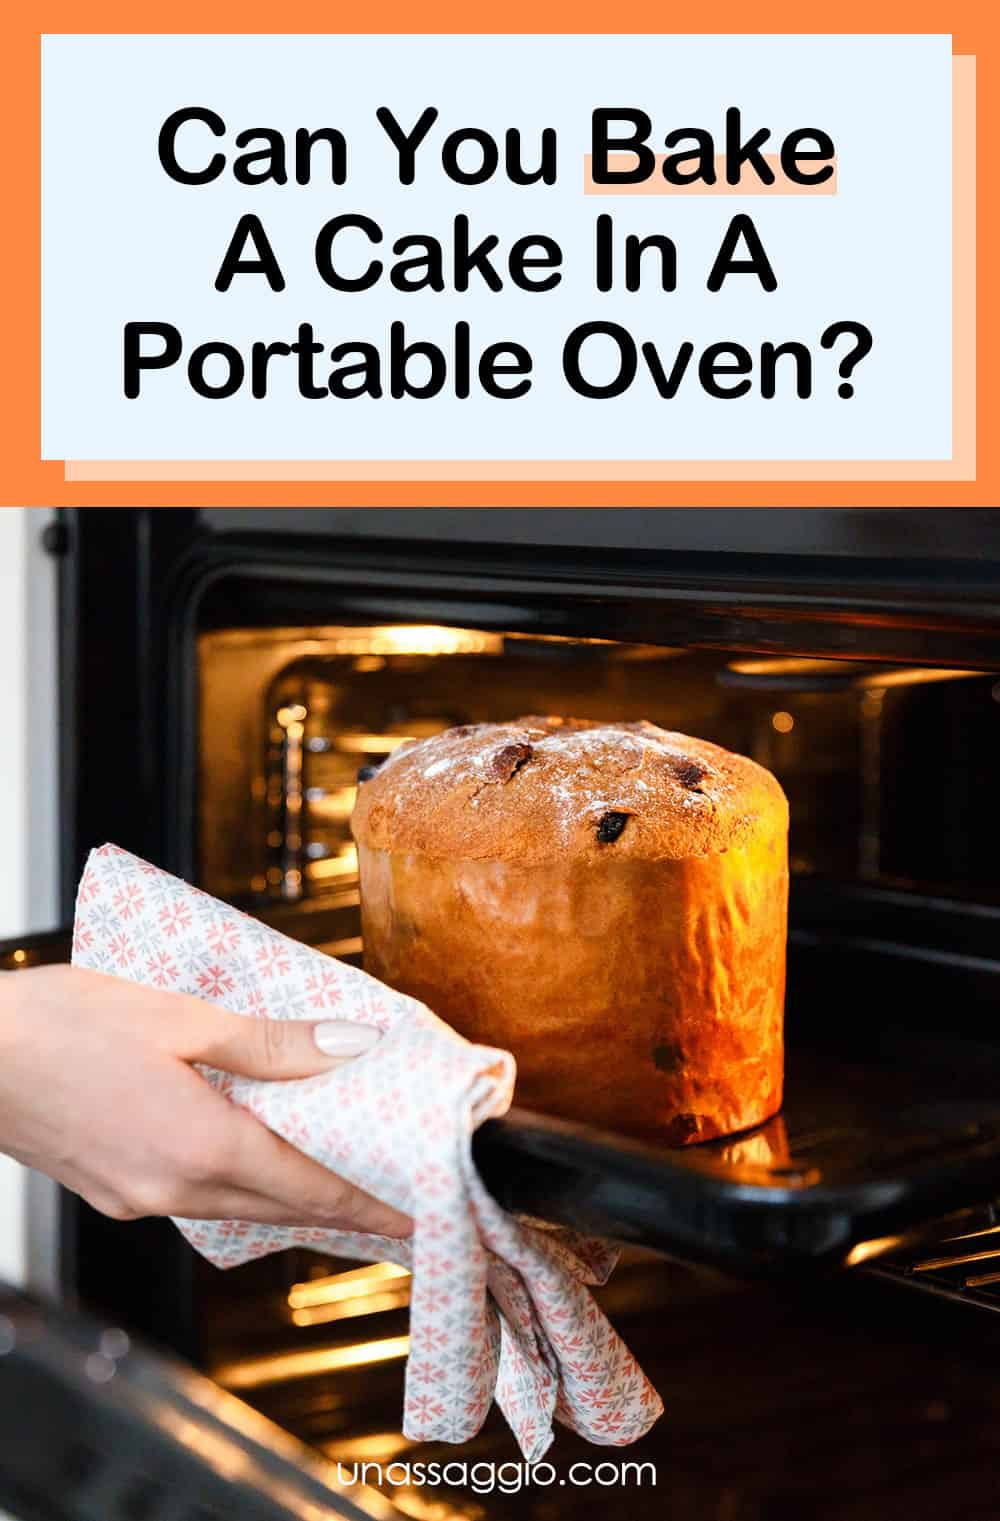 Can You Bake A Cake In A Portable Oven?